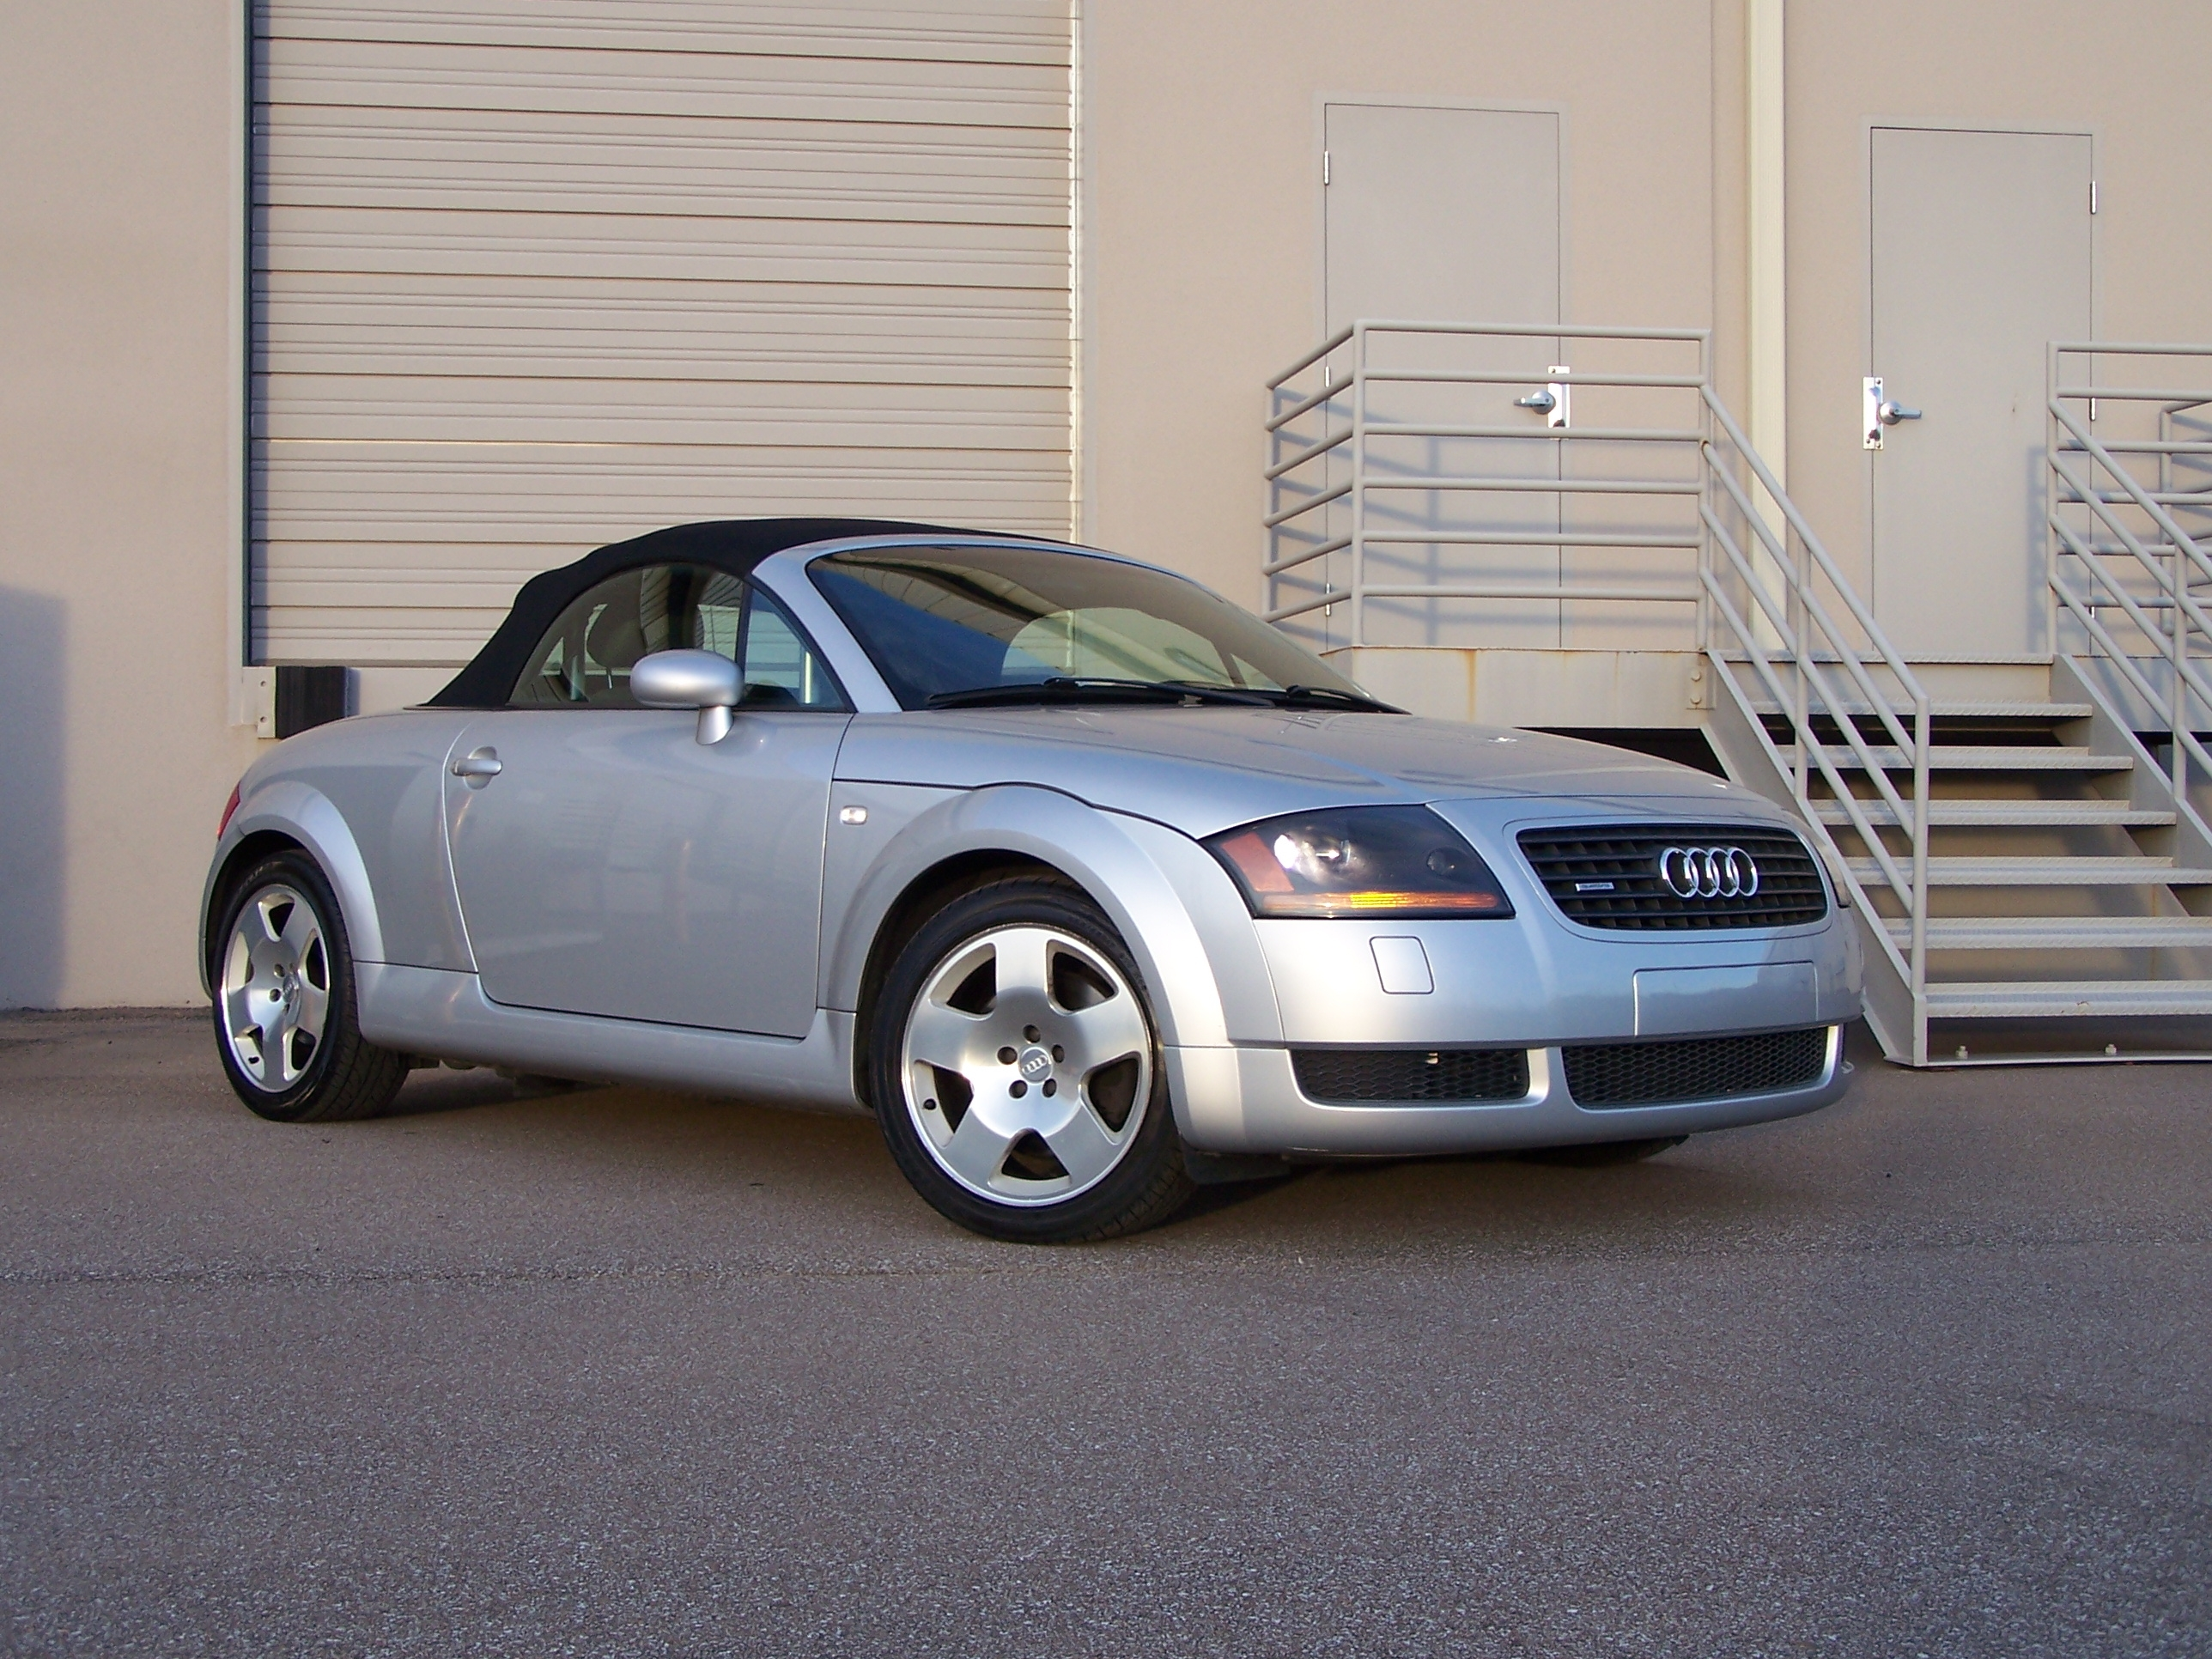 freemanwp 2002 audi tt specs, photos, modification info at cardomain